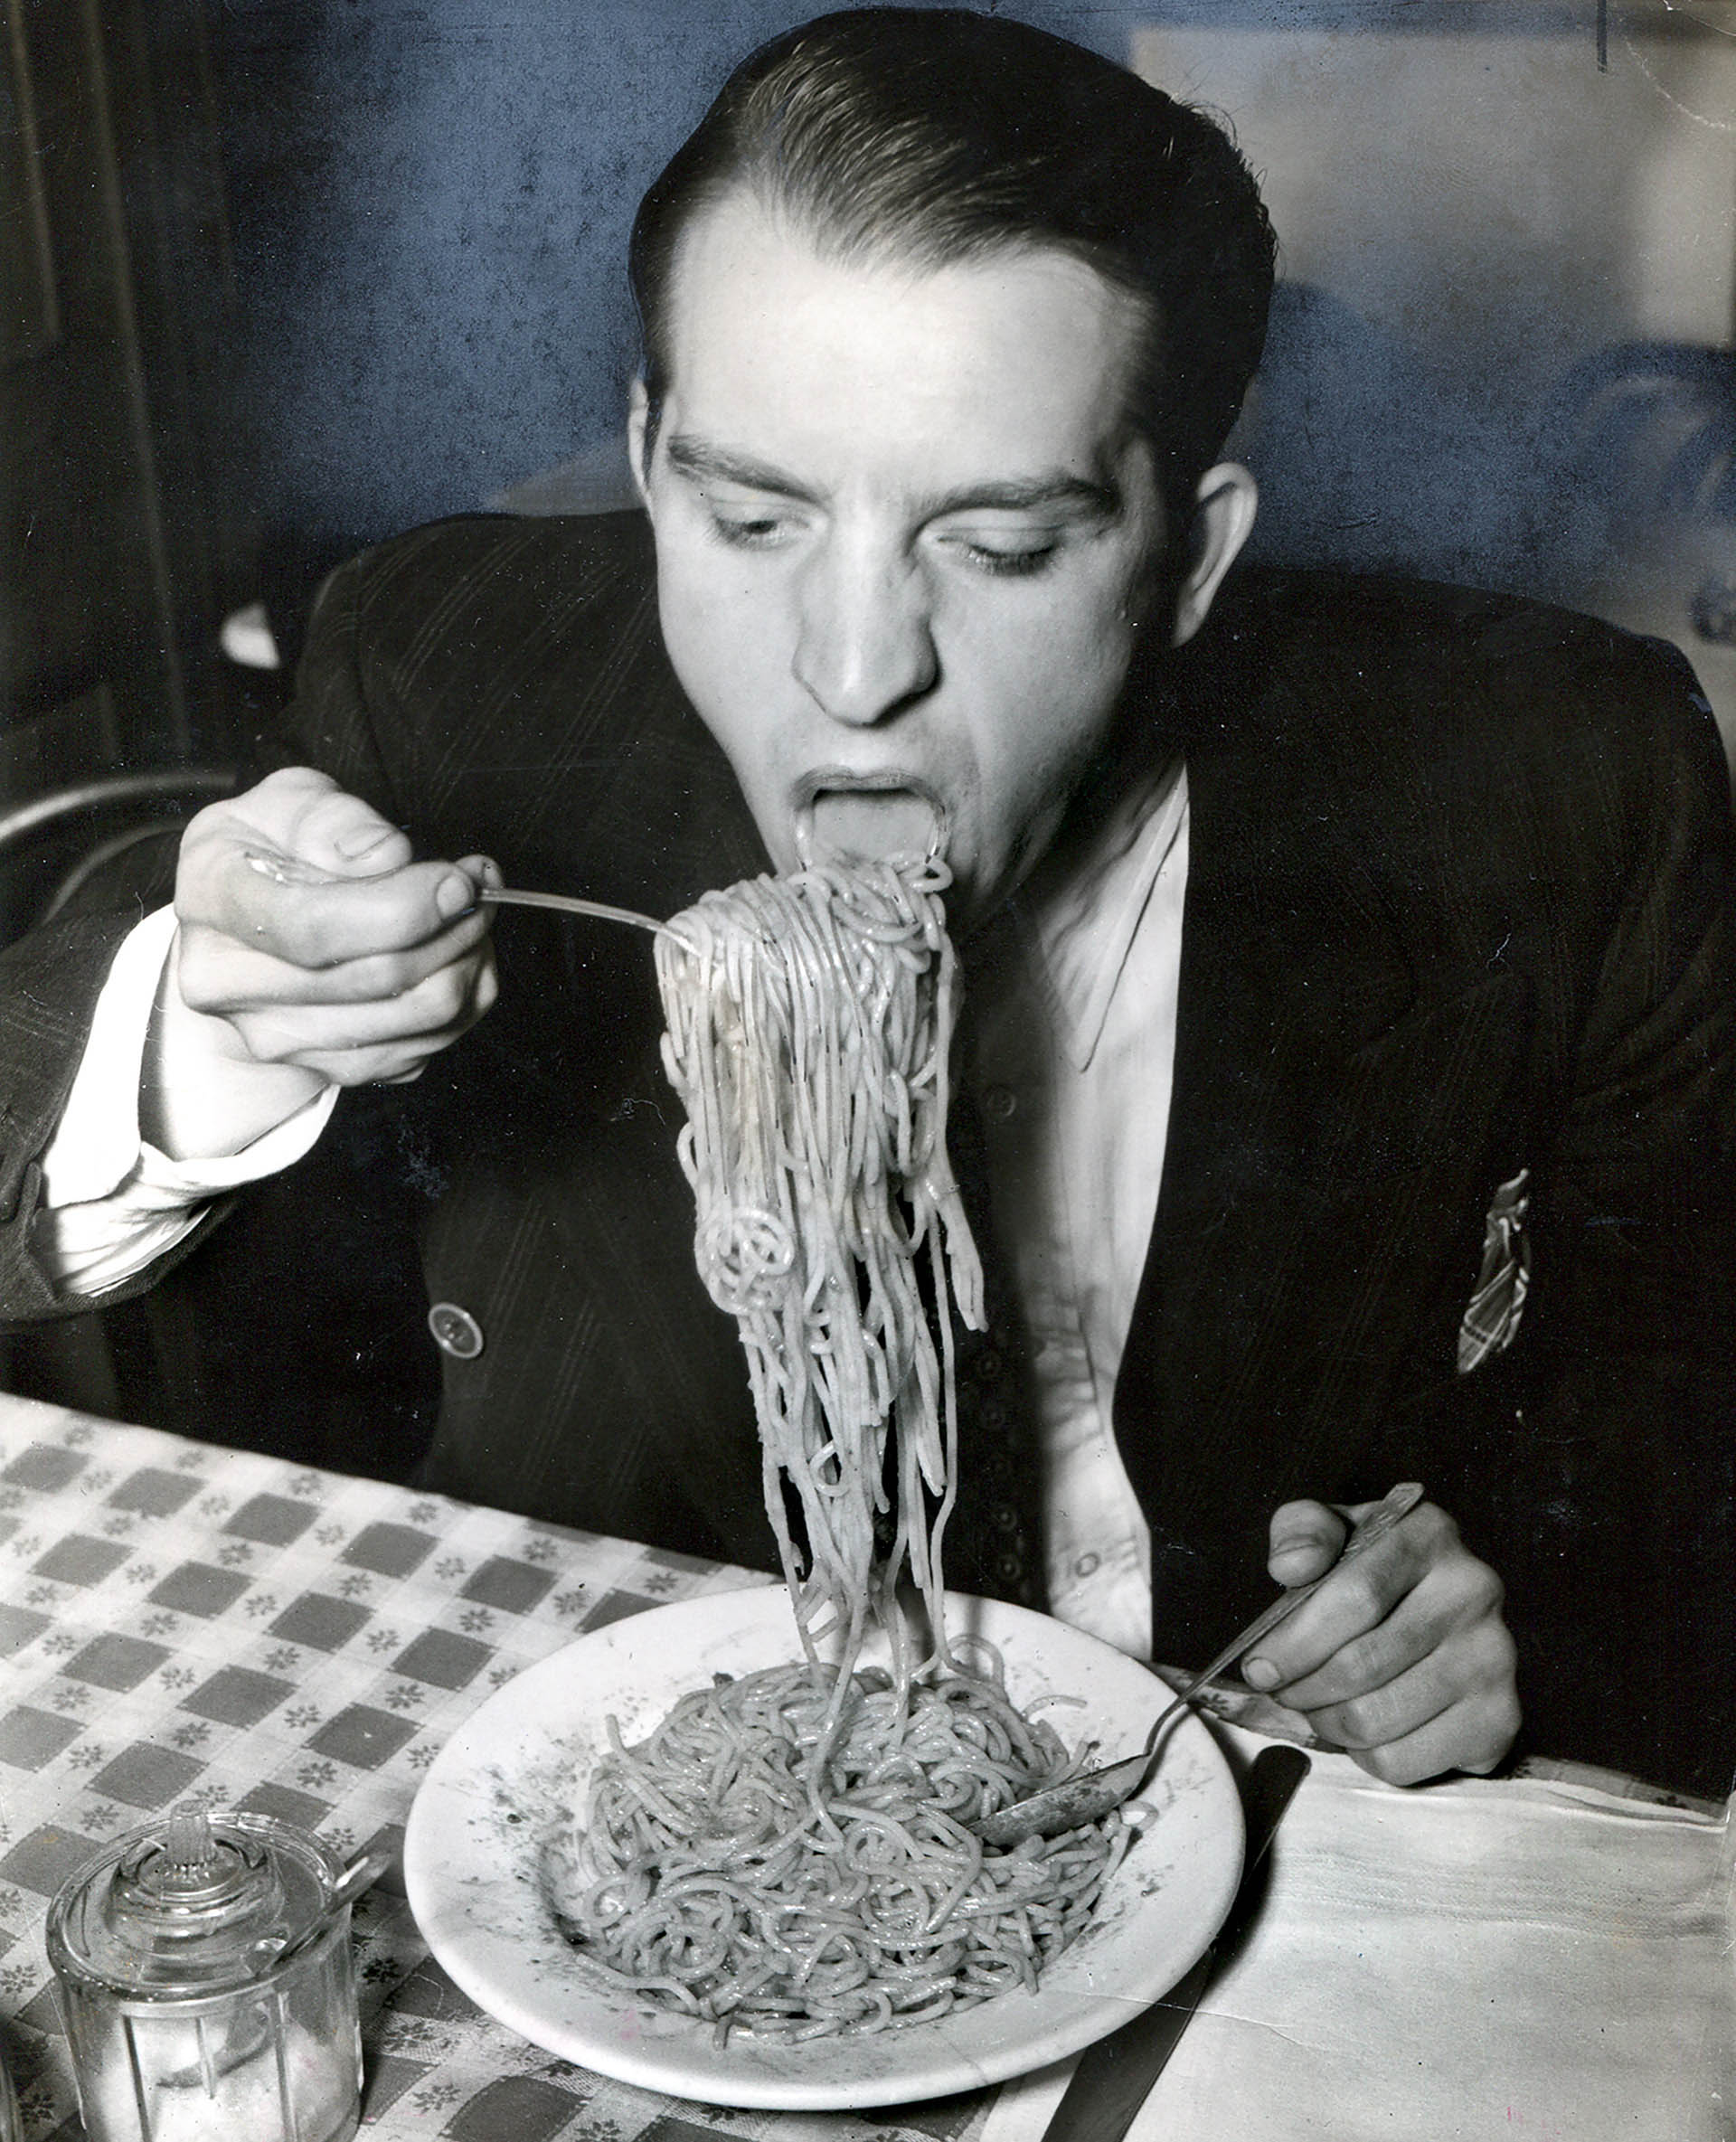 Fotó: Weegee: Phillip J. Stazzone is on WPA and enjoys his favourite food as he's heard that the Army doesn't go in very strong for serving spaghetti, 1940 © Weegee/International Center of Photography,